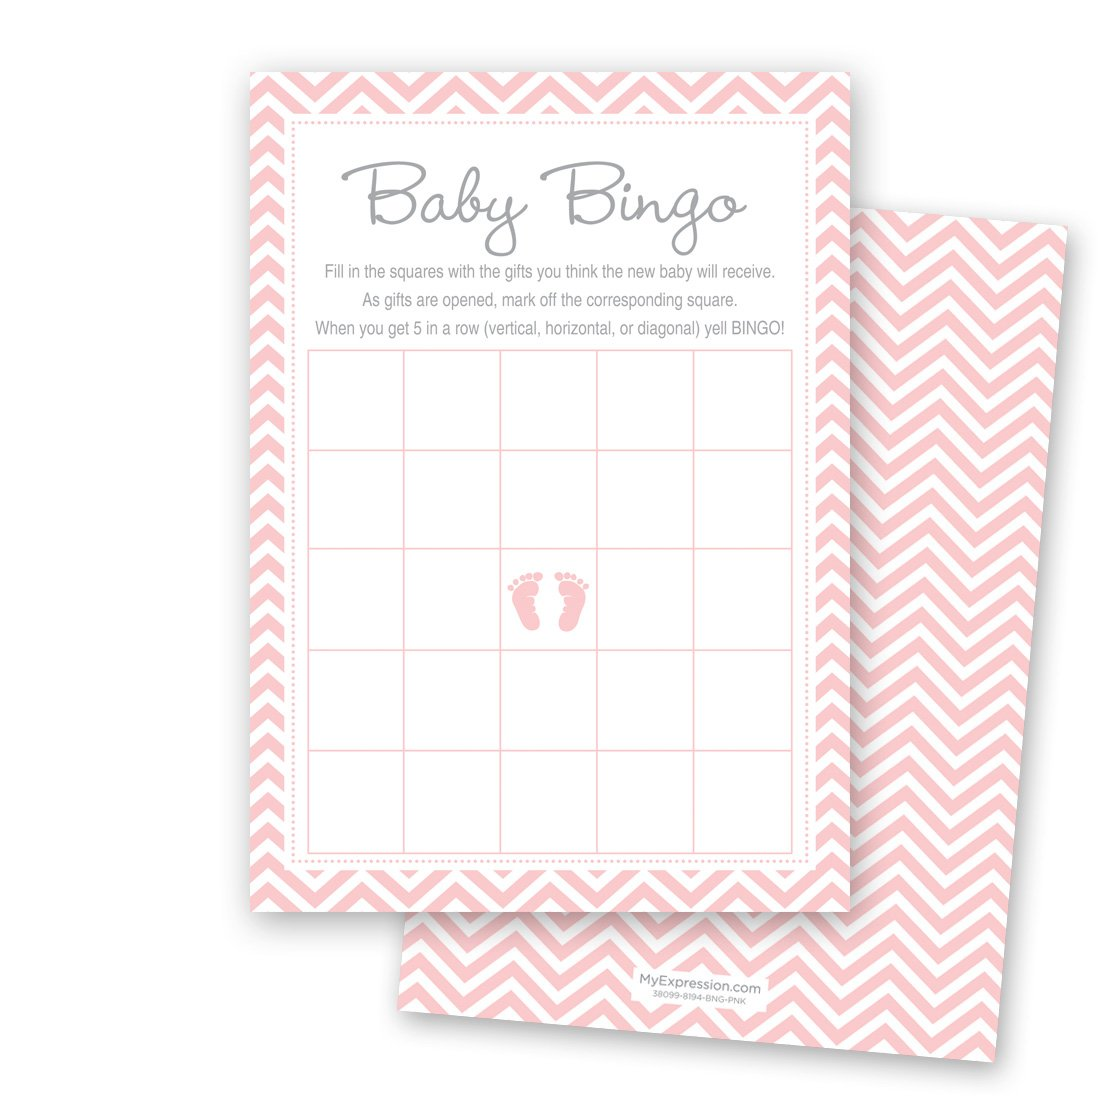 MyExpression.com 24 Cnt Pink Baby Feet Footprint Baby Bingo Cards by MyExpression.com